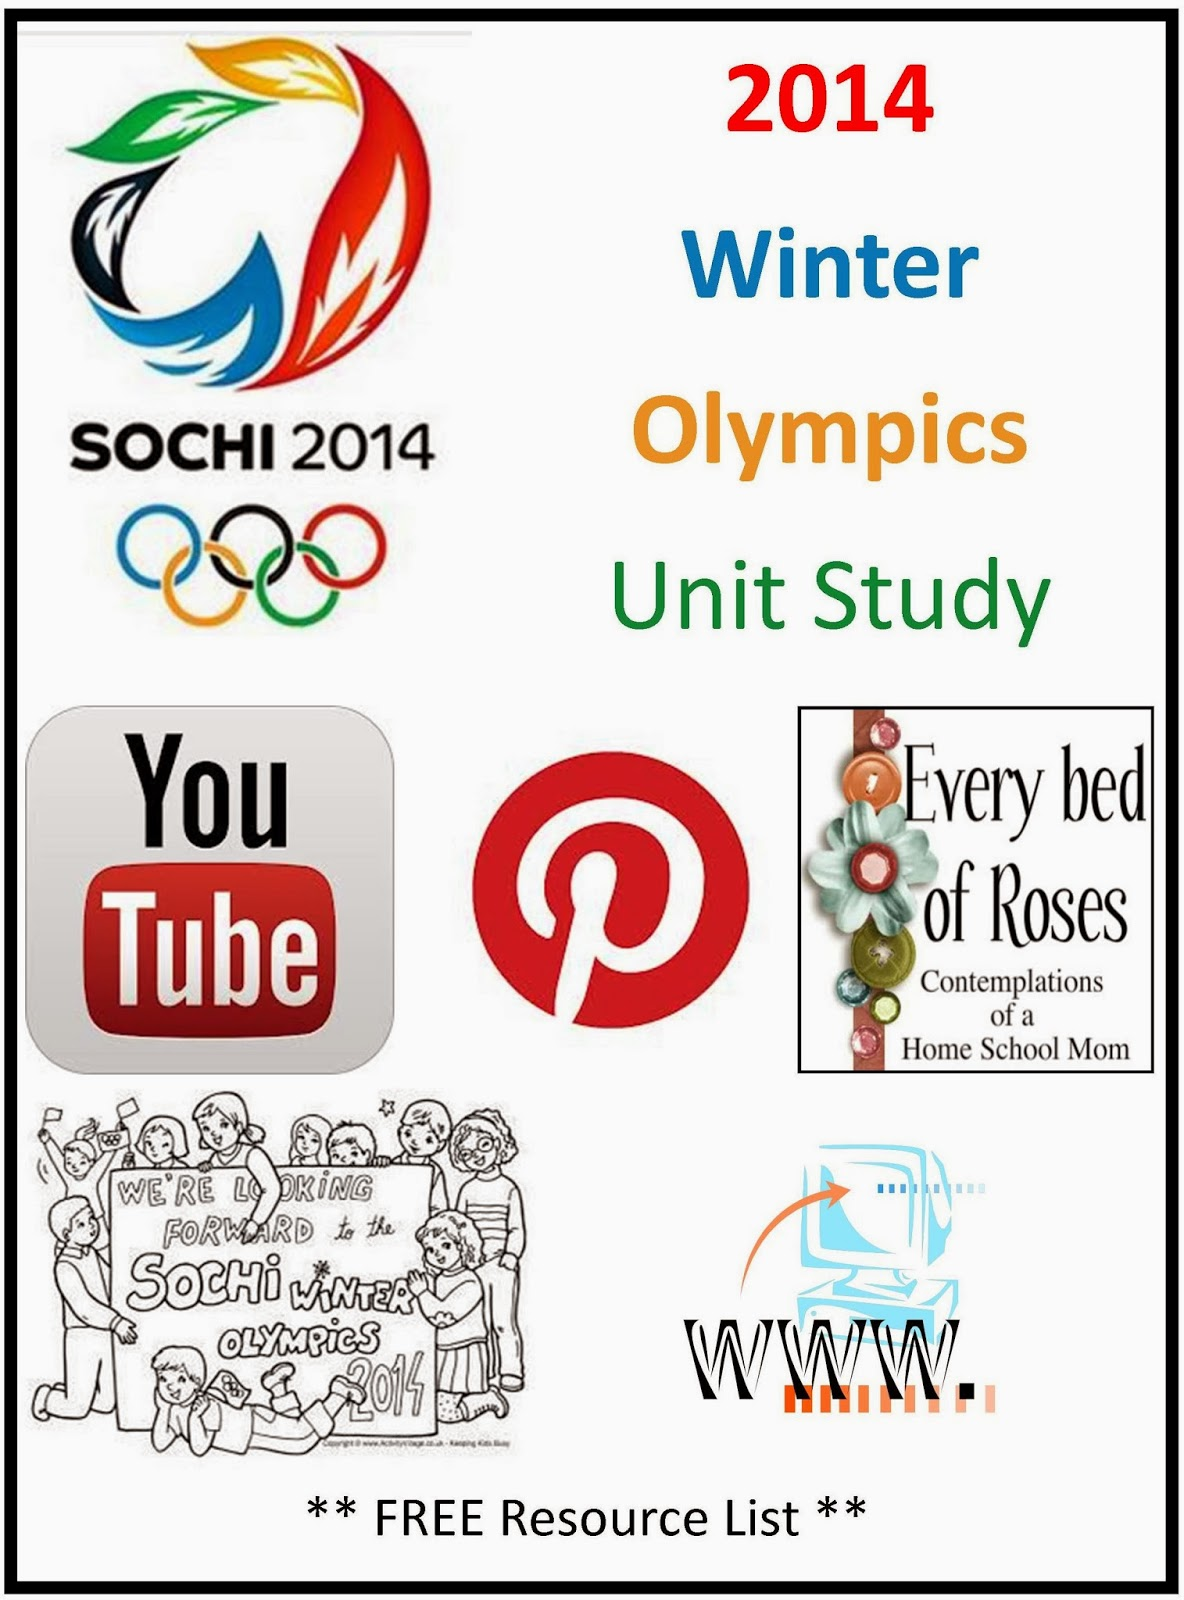 Every Bed Of Roses Winter Olympics Unit Study Resources